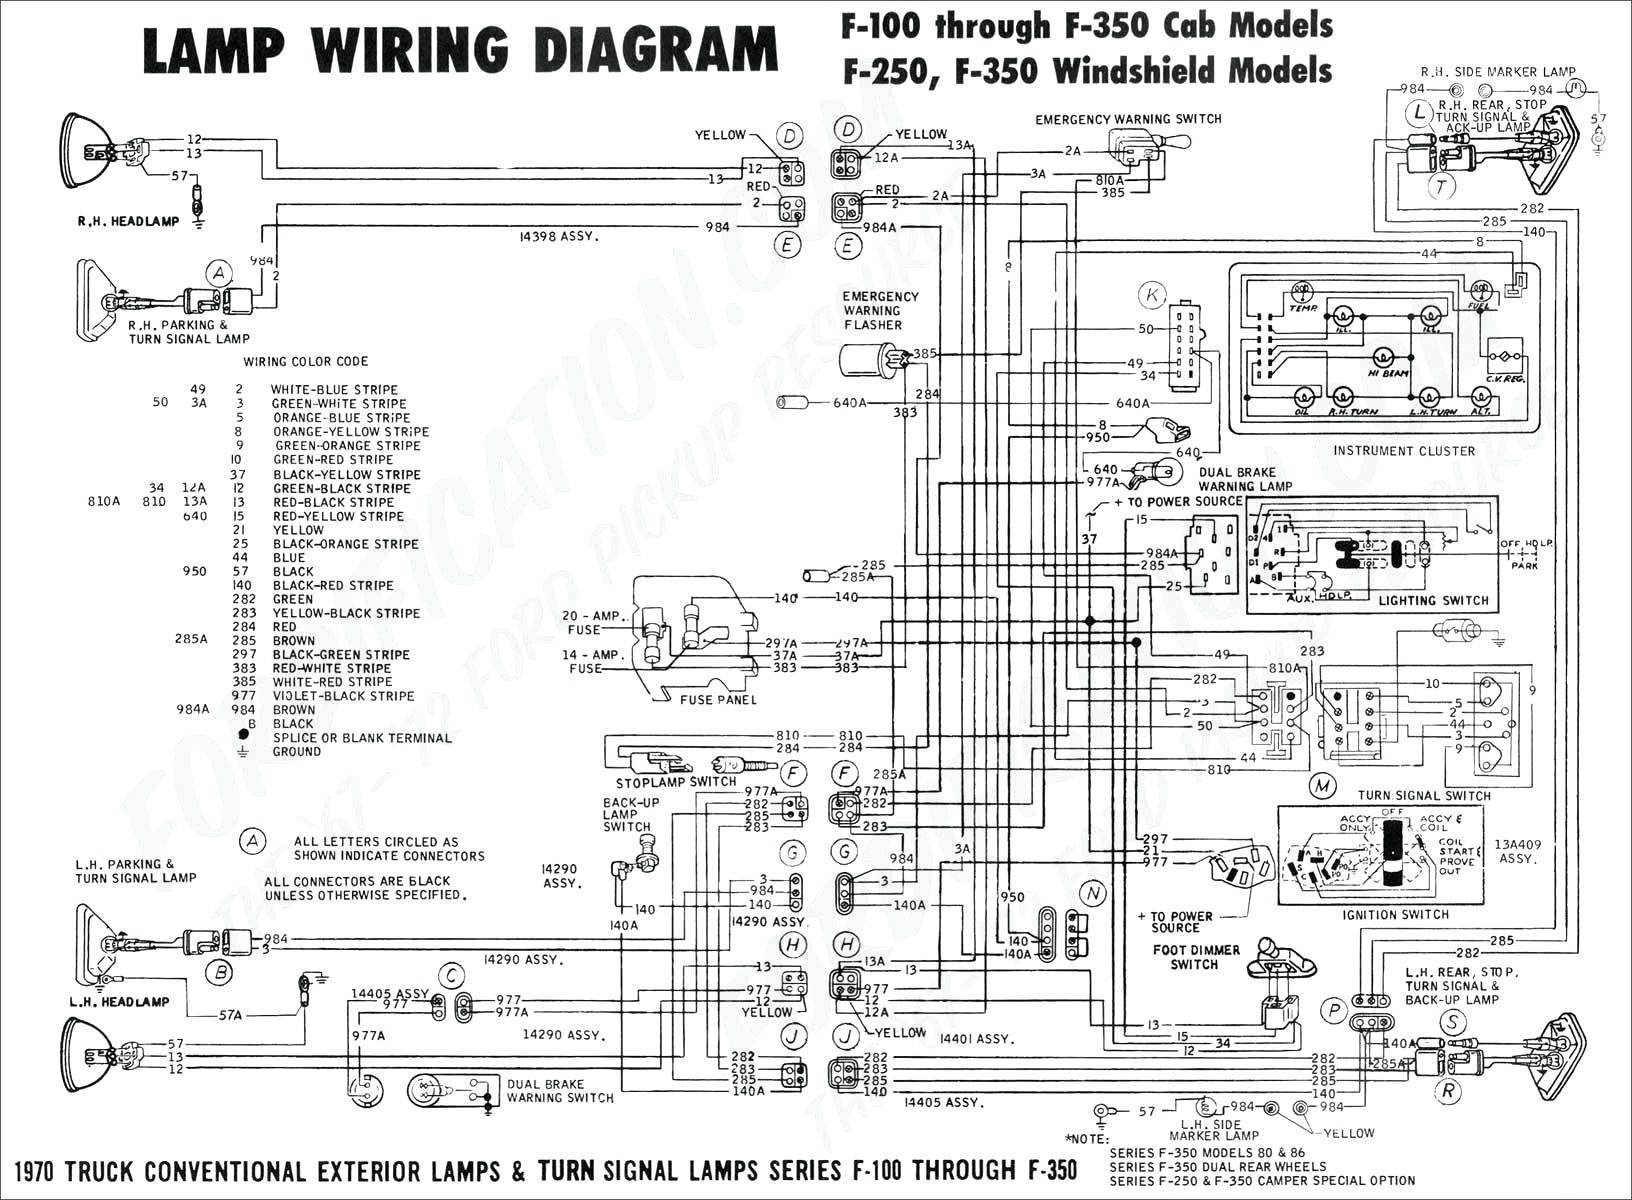 2005 Honda Accord Wiring Diagram - Electrical Wiring Diagram Guide